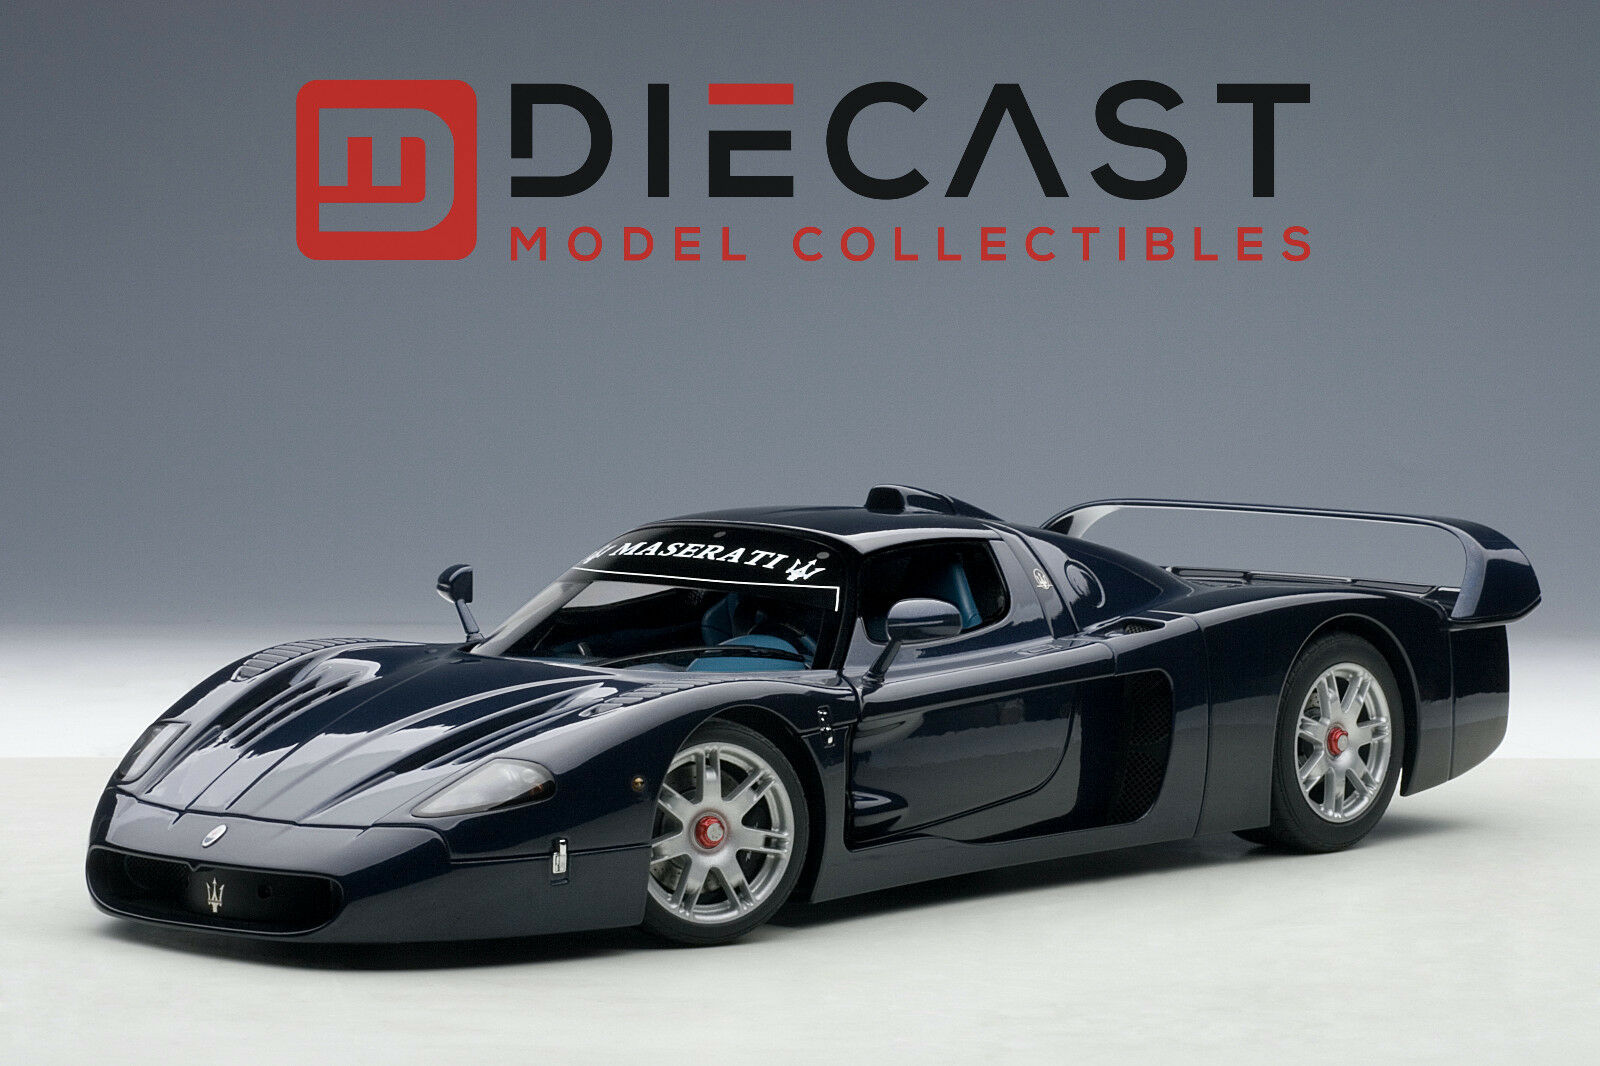 AUTOart 75802 Maserati MC12 Road Car, Metallic Blau 1 18TH Scale